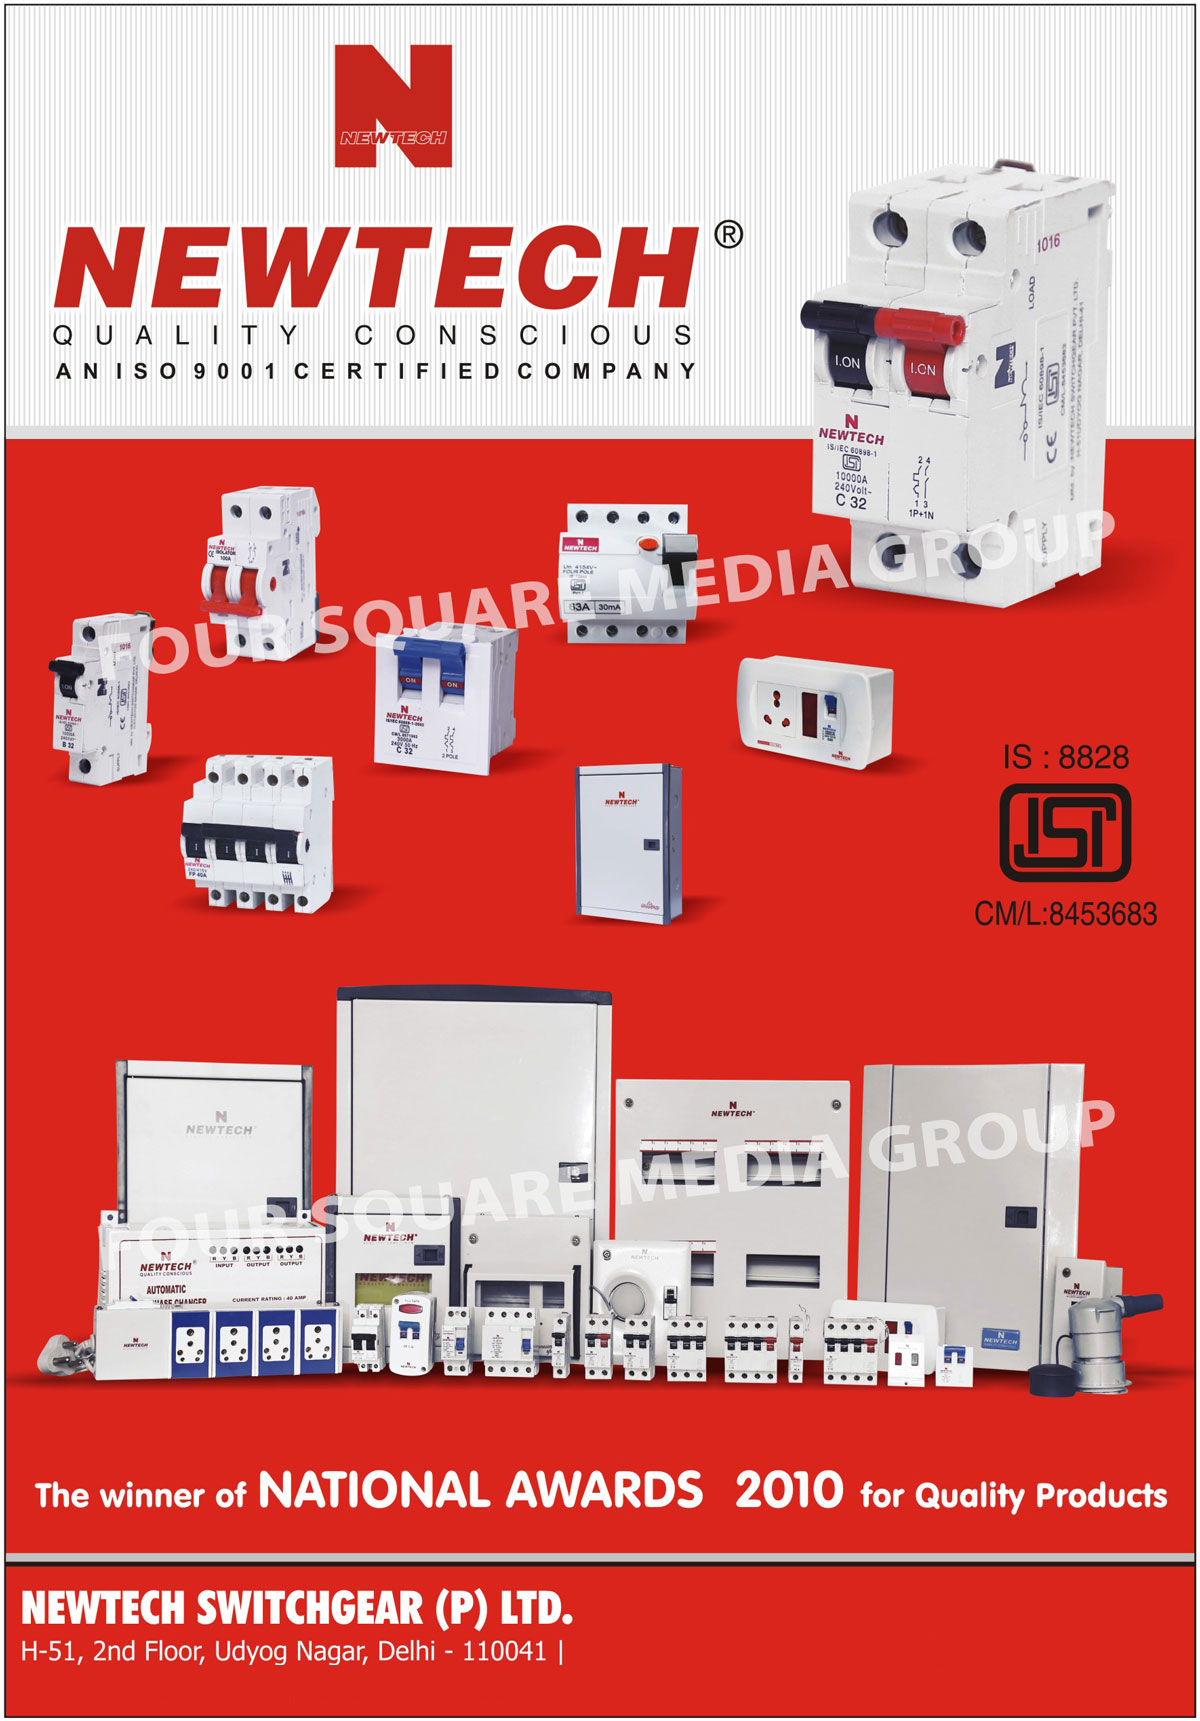 Electrical MCB, MCB, Isolators, Mini MCB, Product Family MCB, SP Motor Starter, RCCB, Mini Change Over Switches, Shunt,Miniature Circuit Breaker, MCB, MCB Distribution Boards, Automatic Changeover Switches, Metal Clad Plug, Metal Clad Socket, Rewirable Fuse Units, Main Switches, Bushbar Chamber, Power Strips